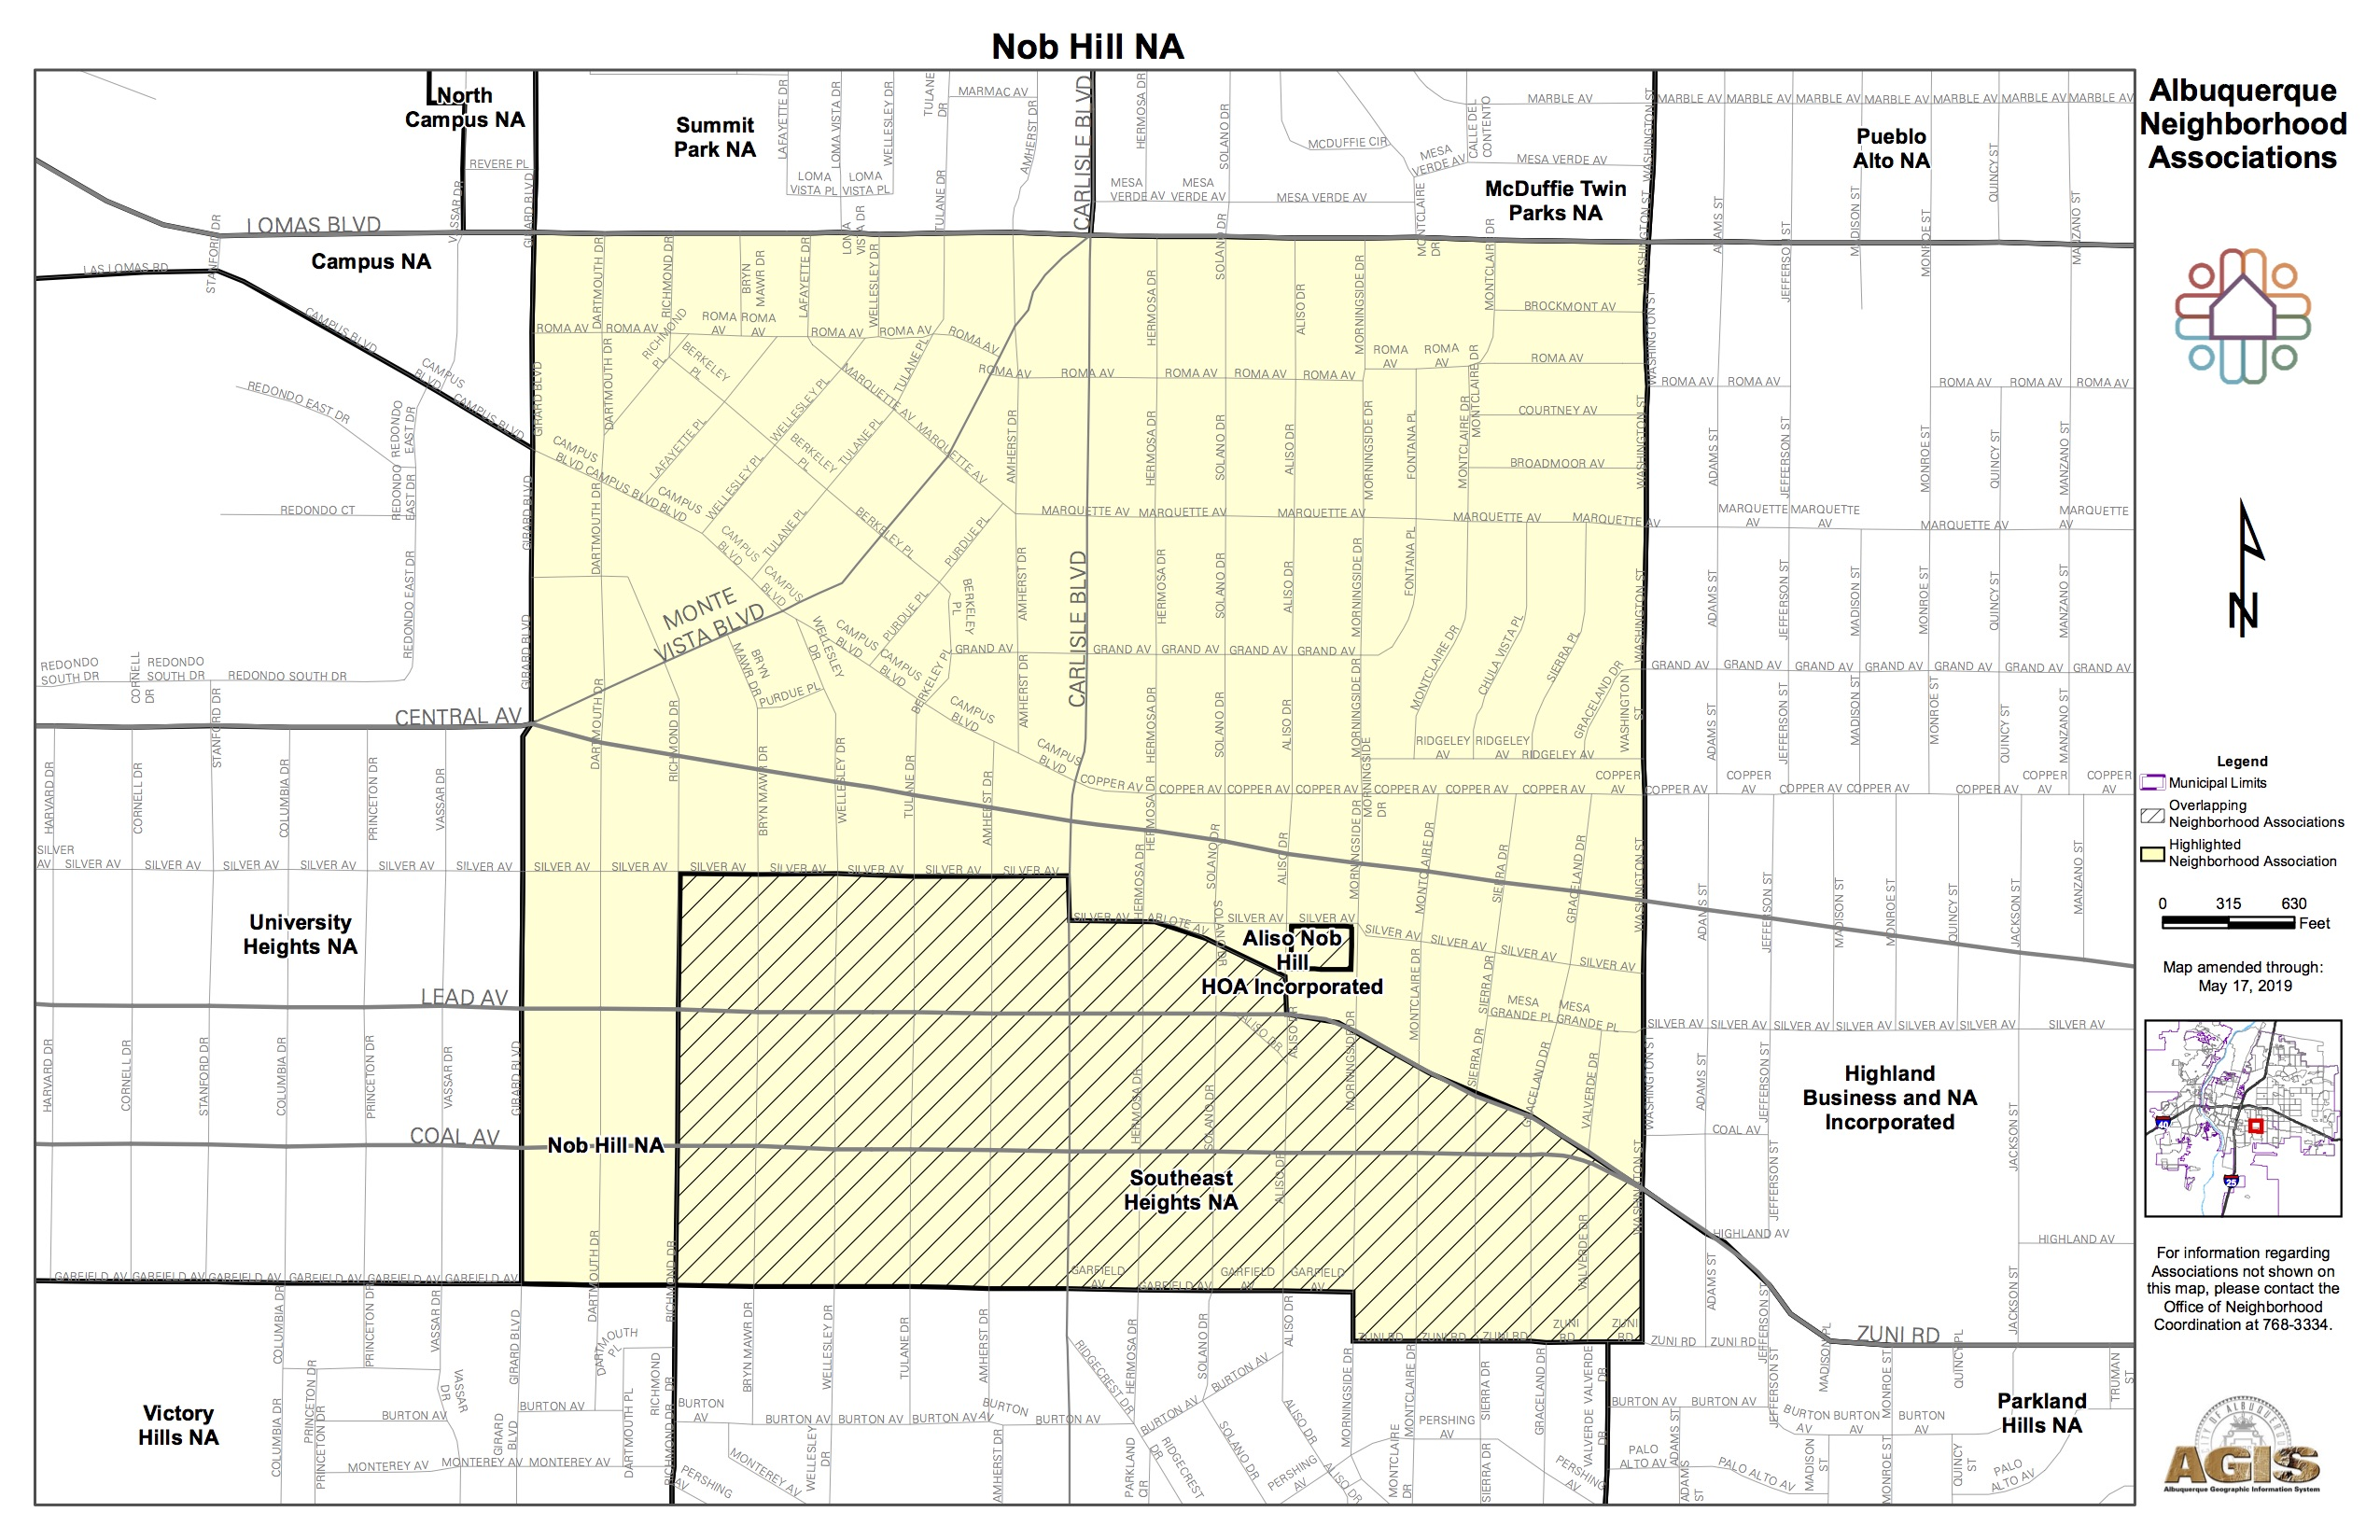 Adjacent Nob Hill Neighborhood Association SE Heights Map